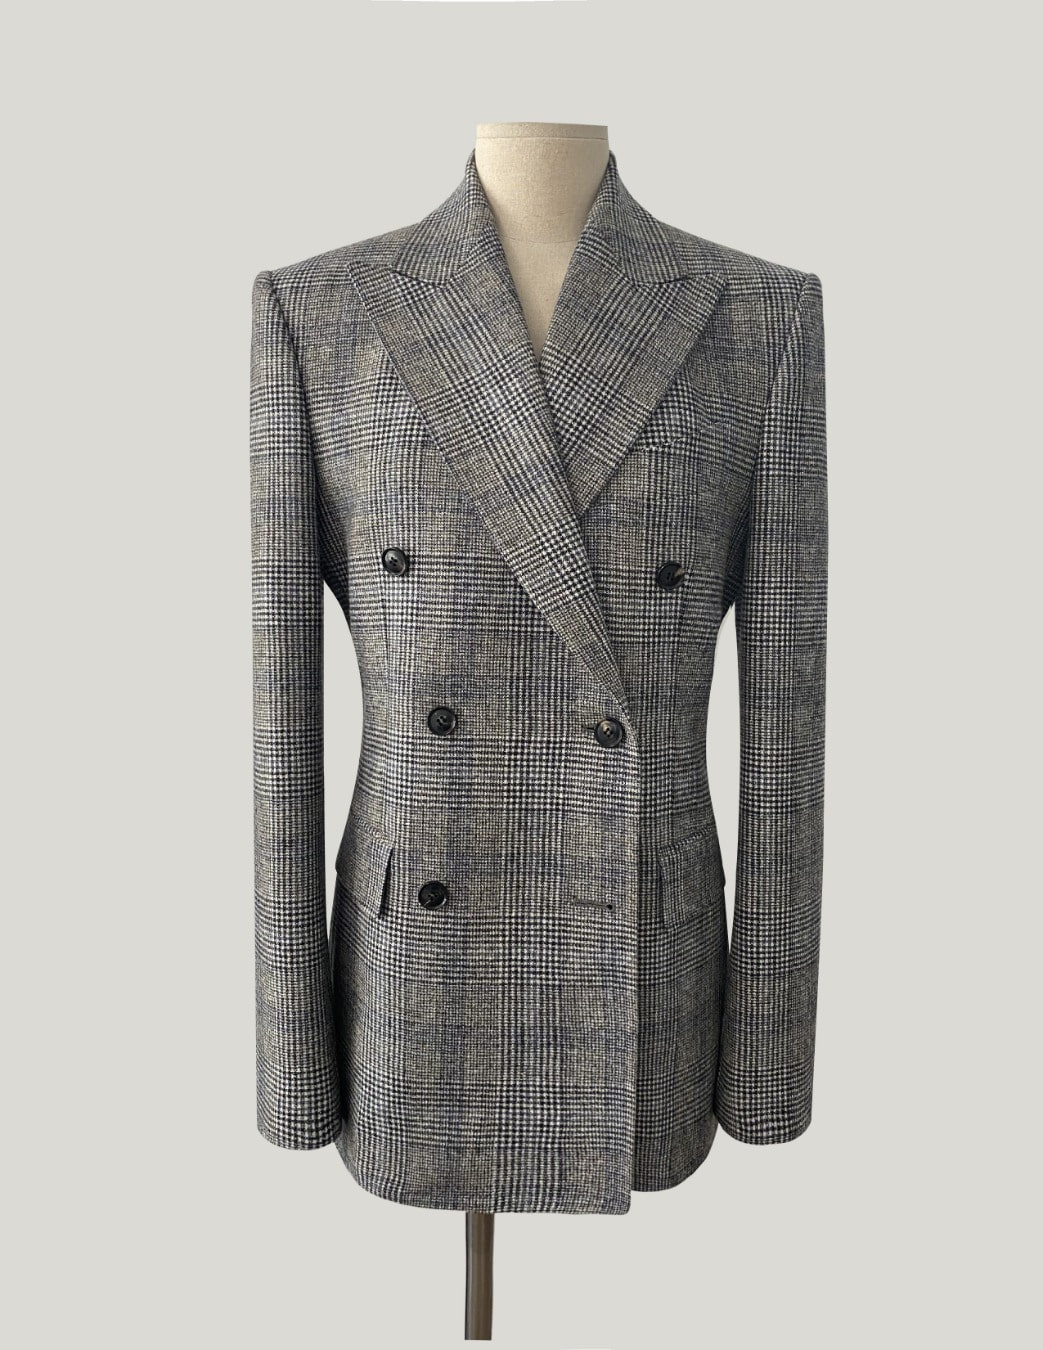 GRAY-BLUE GLEN CHECK DOUBLE BREASTED JACKET